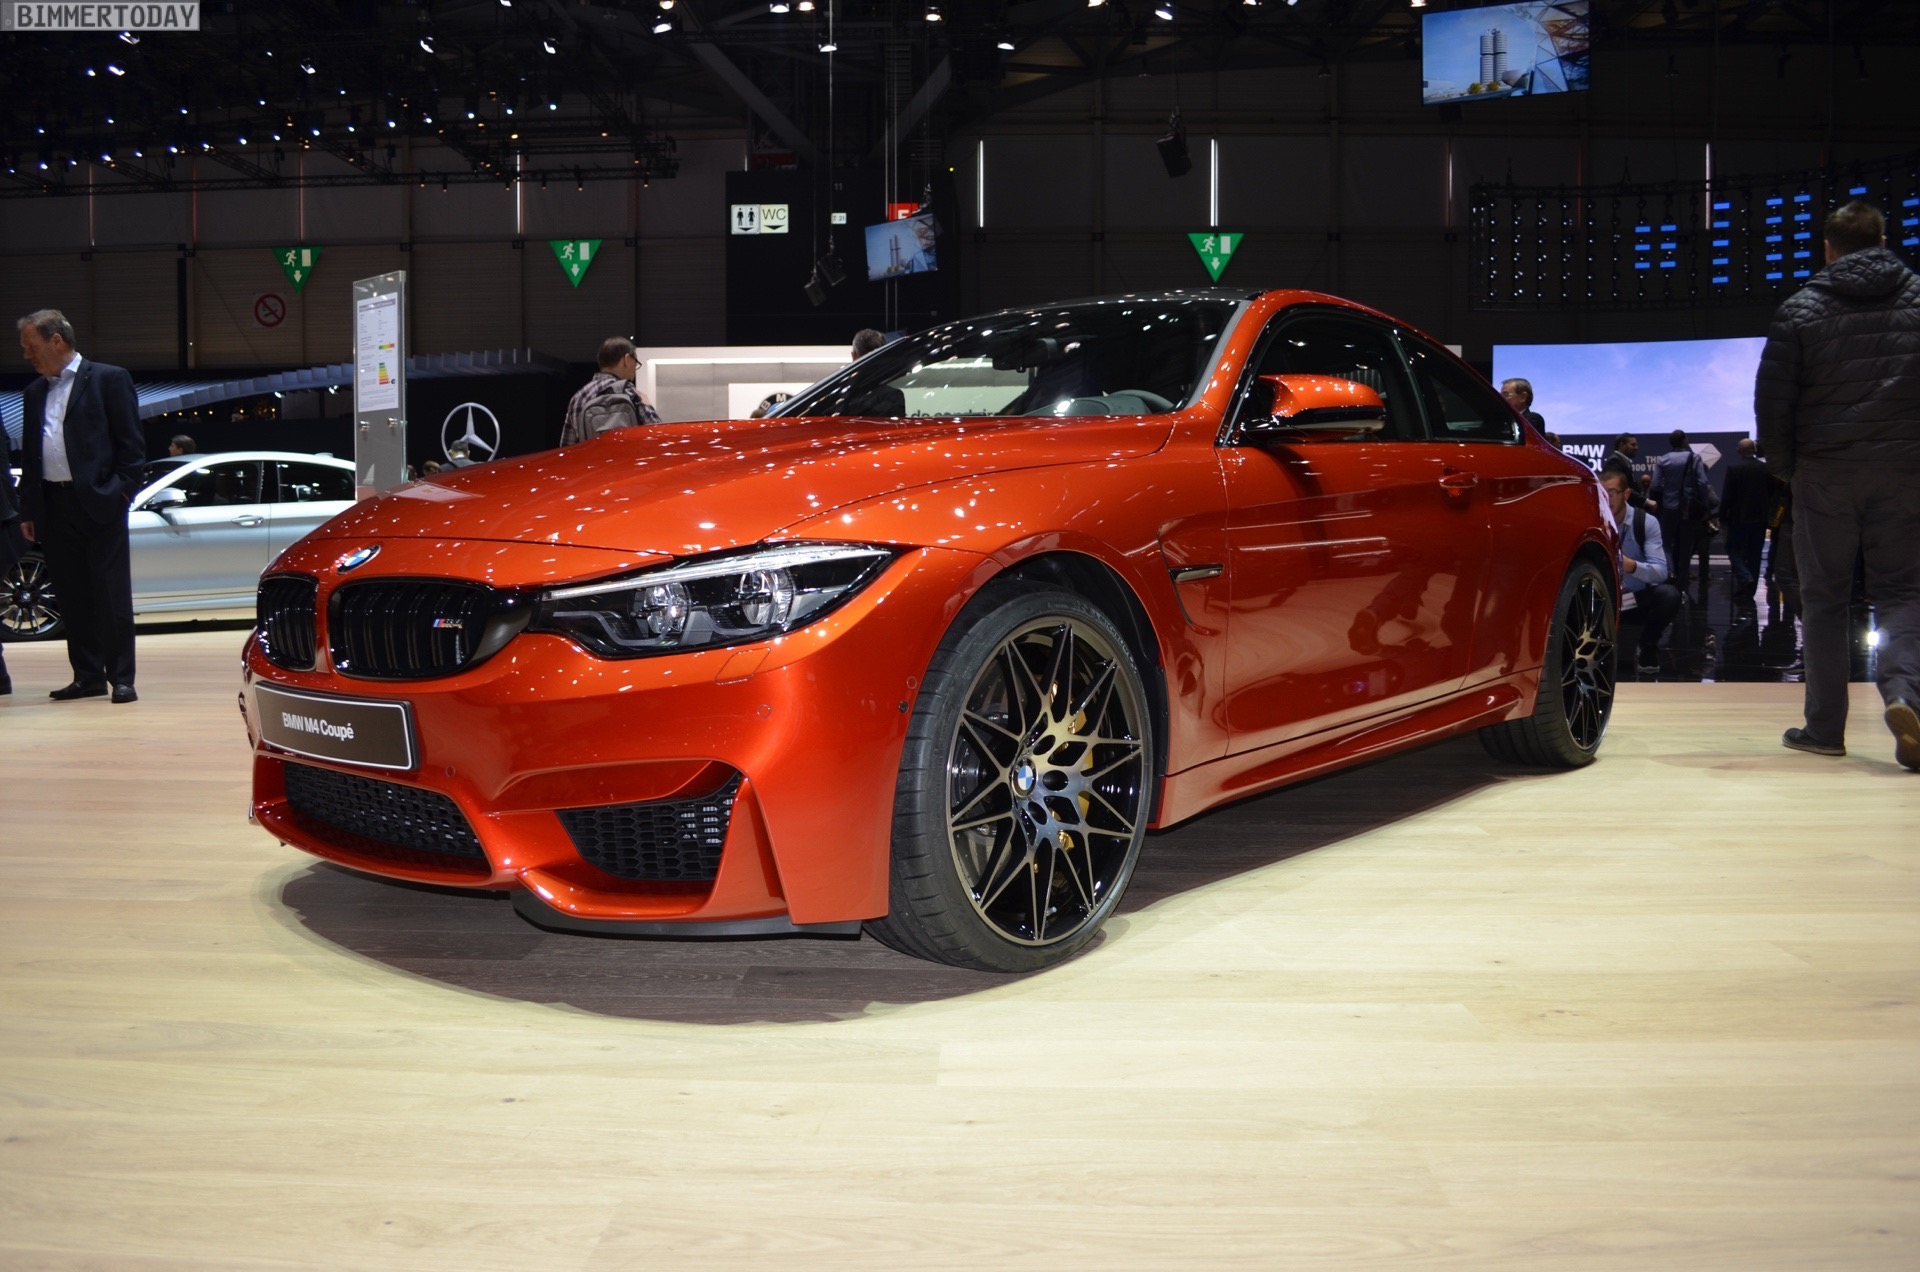 Updated 2017 BMW M4 Arrives in Australia Priced at AUD149,900